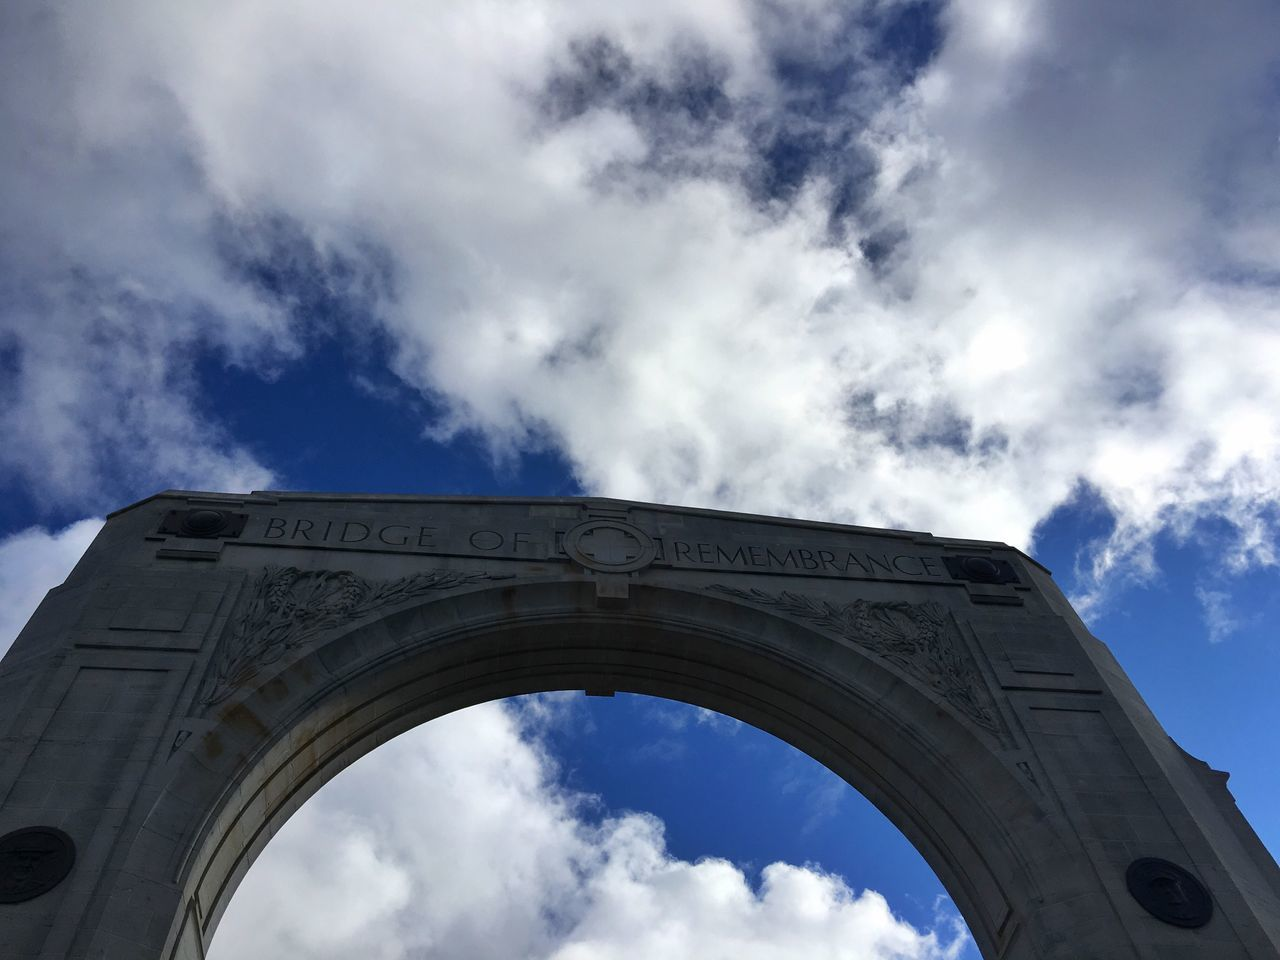 An archway on the bridge of remembrance Bridge Bridge Arch Bridge Of Remembrance War Memorial Blue Sky